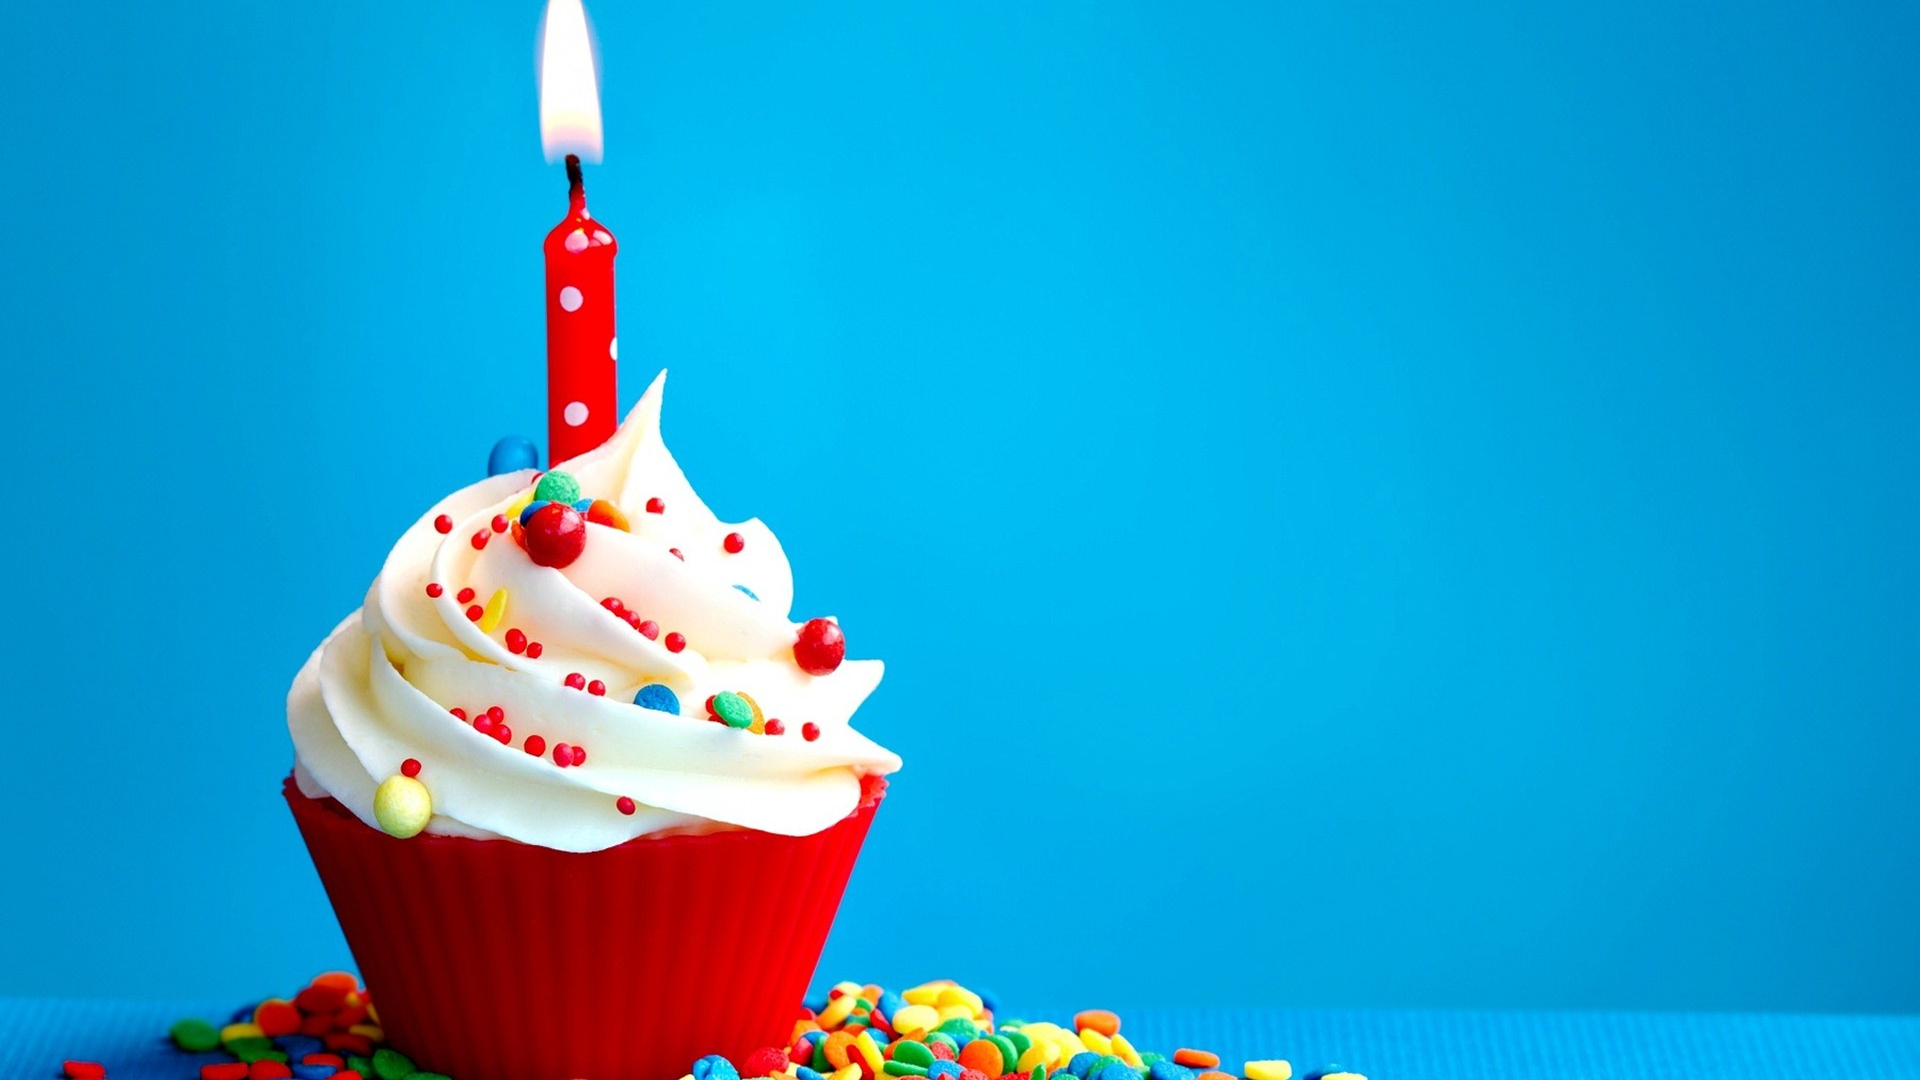 Free download File Name 827175 Happy Birthday Wallpaper for